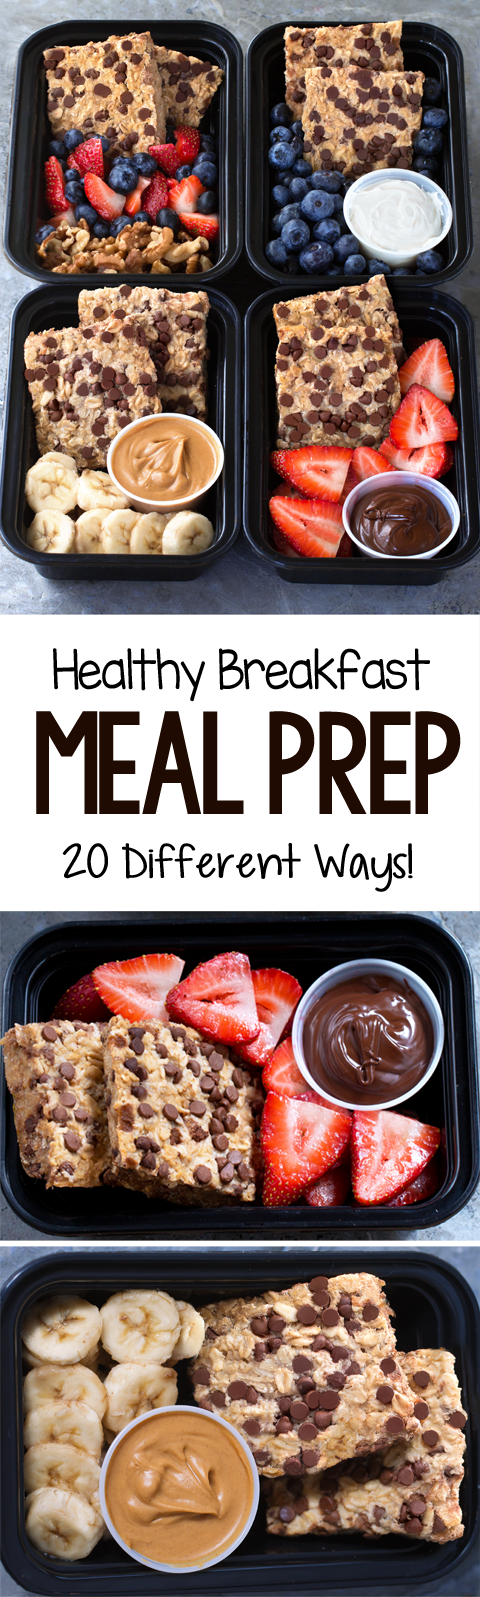 Breakfast Meal Prep 20 Healthy Recipes